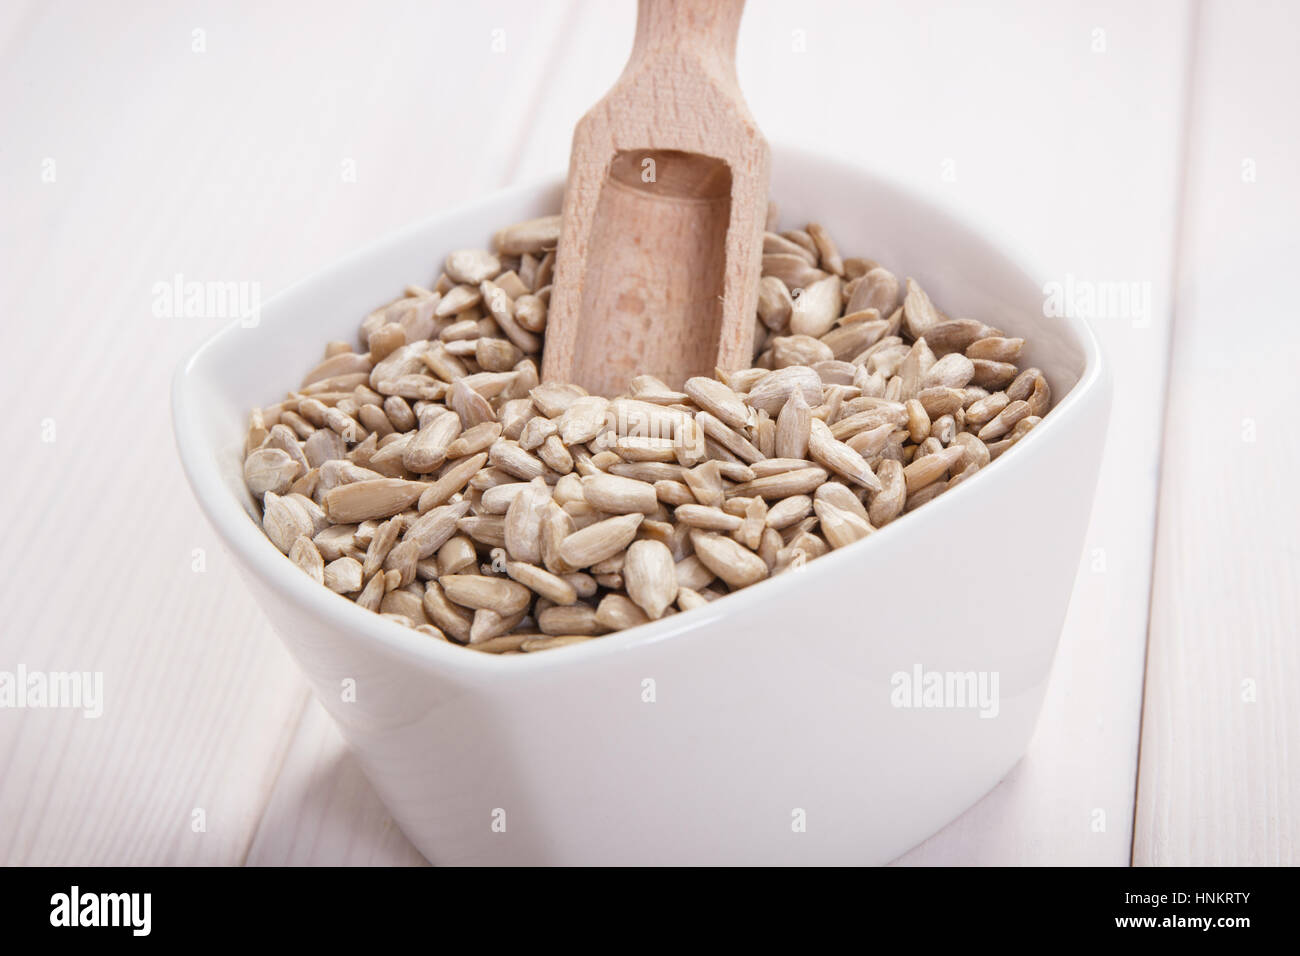 White bowl with sunflower seeds containing zinc and dietary fiber on white boards, natural sources of minerals, - Stock Image